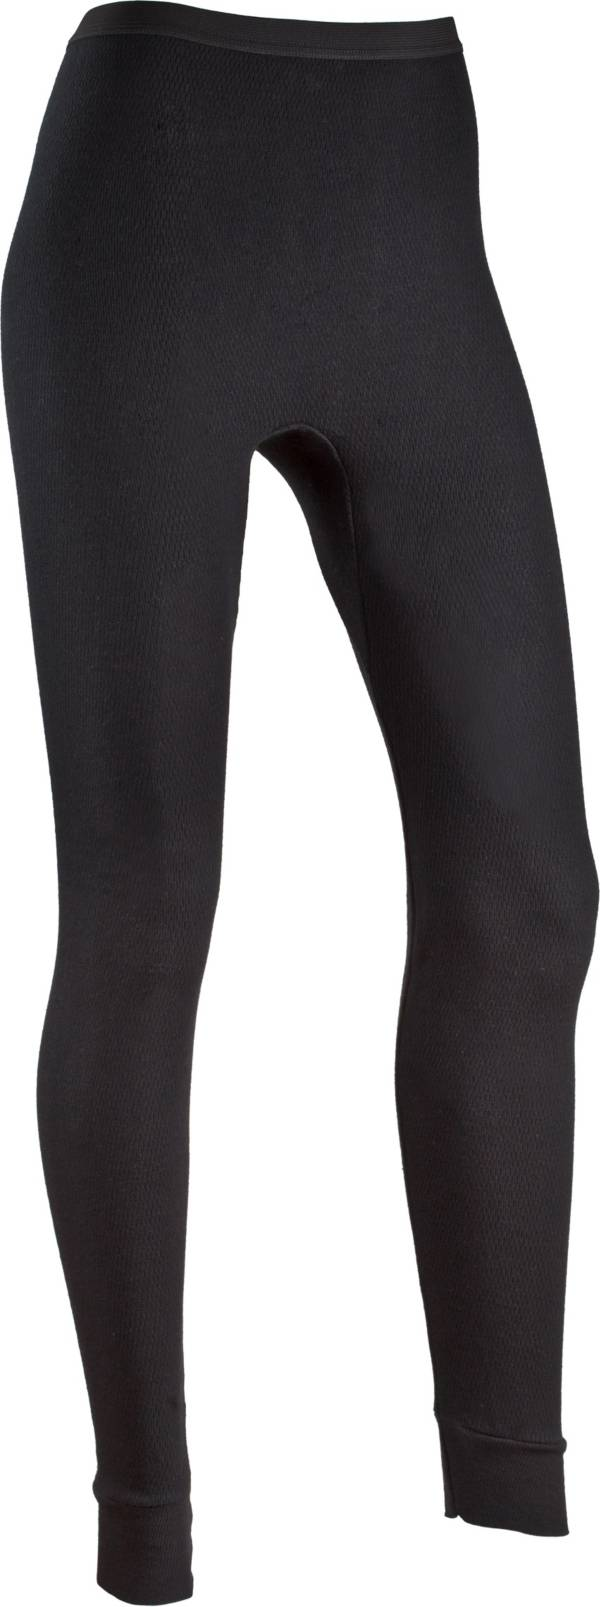 Indera Women's Icetex Performance Thermal Ankle Length Pants product image